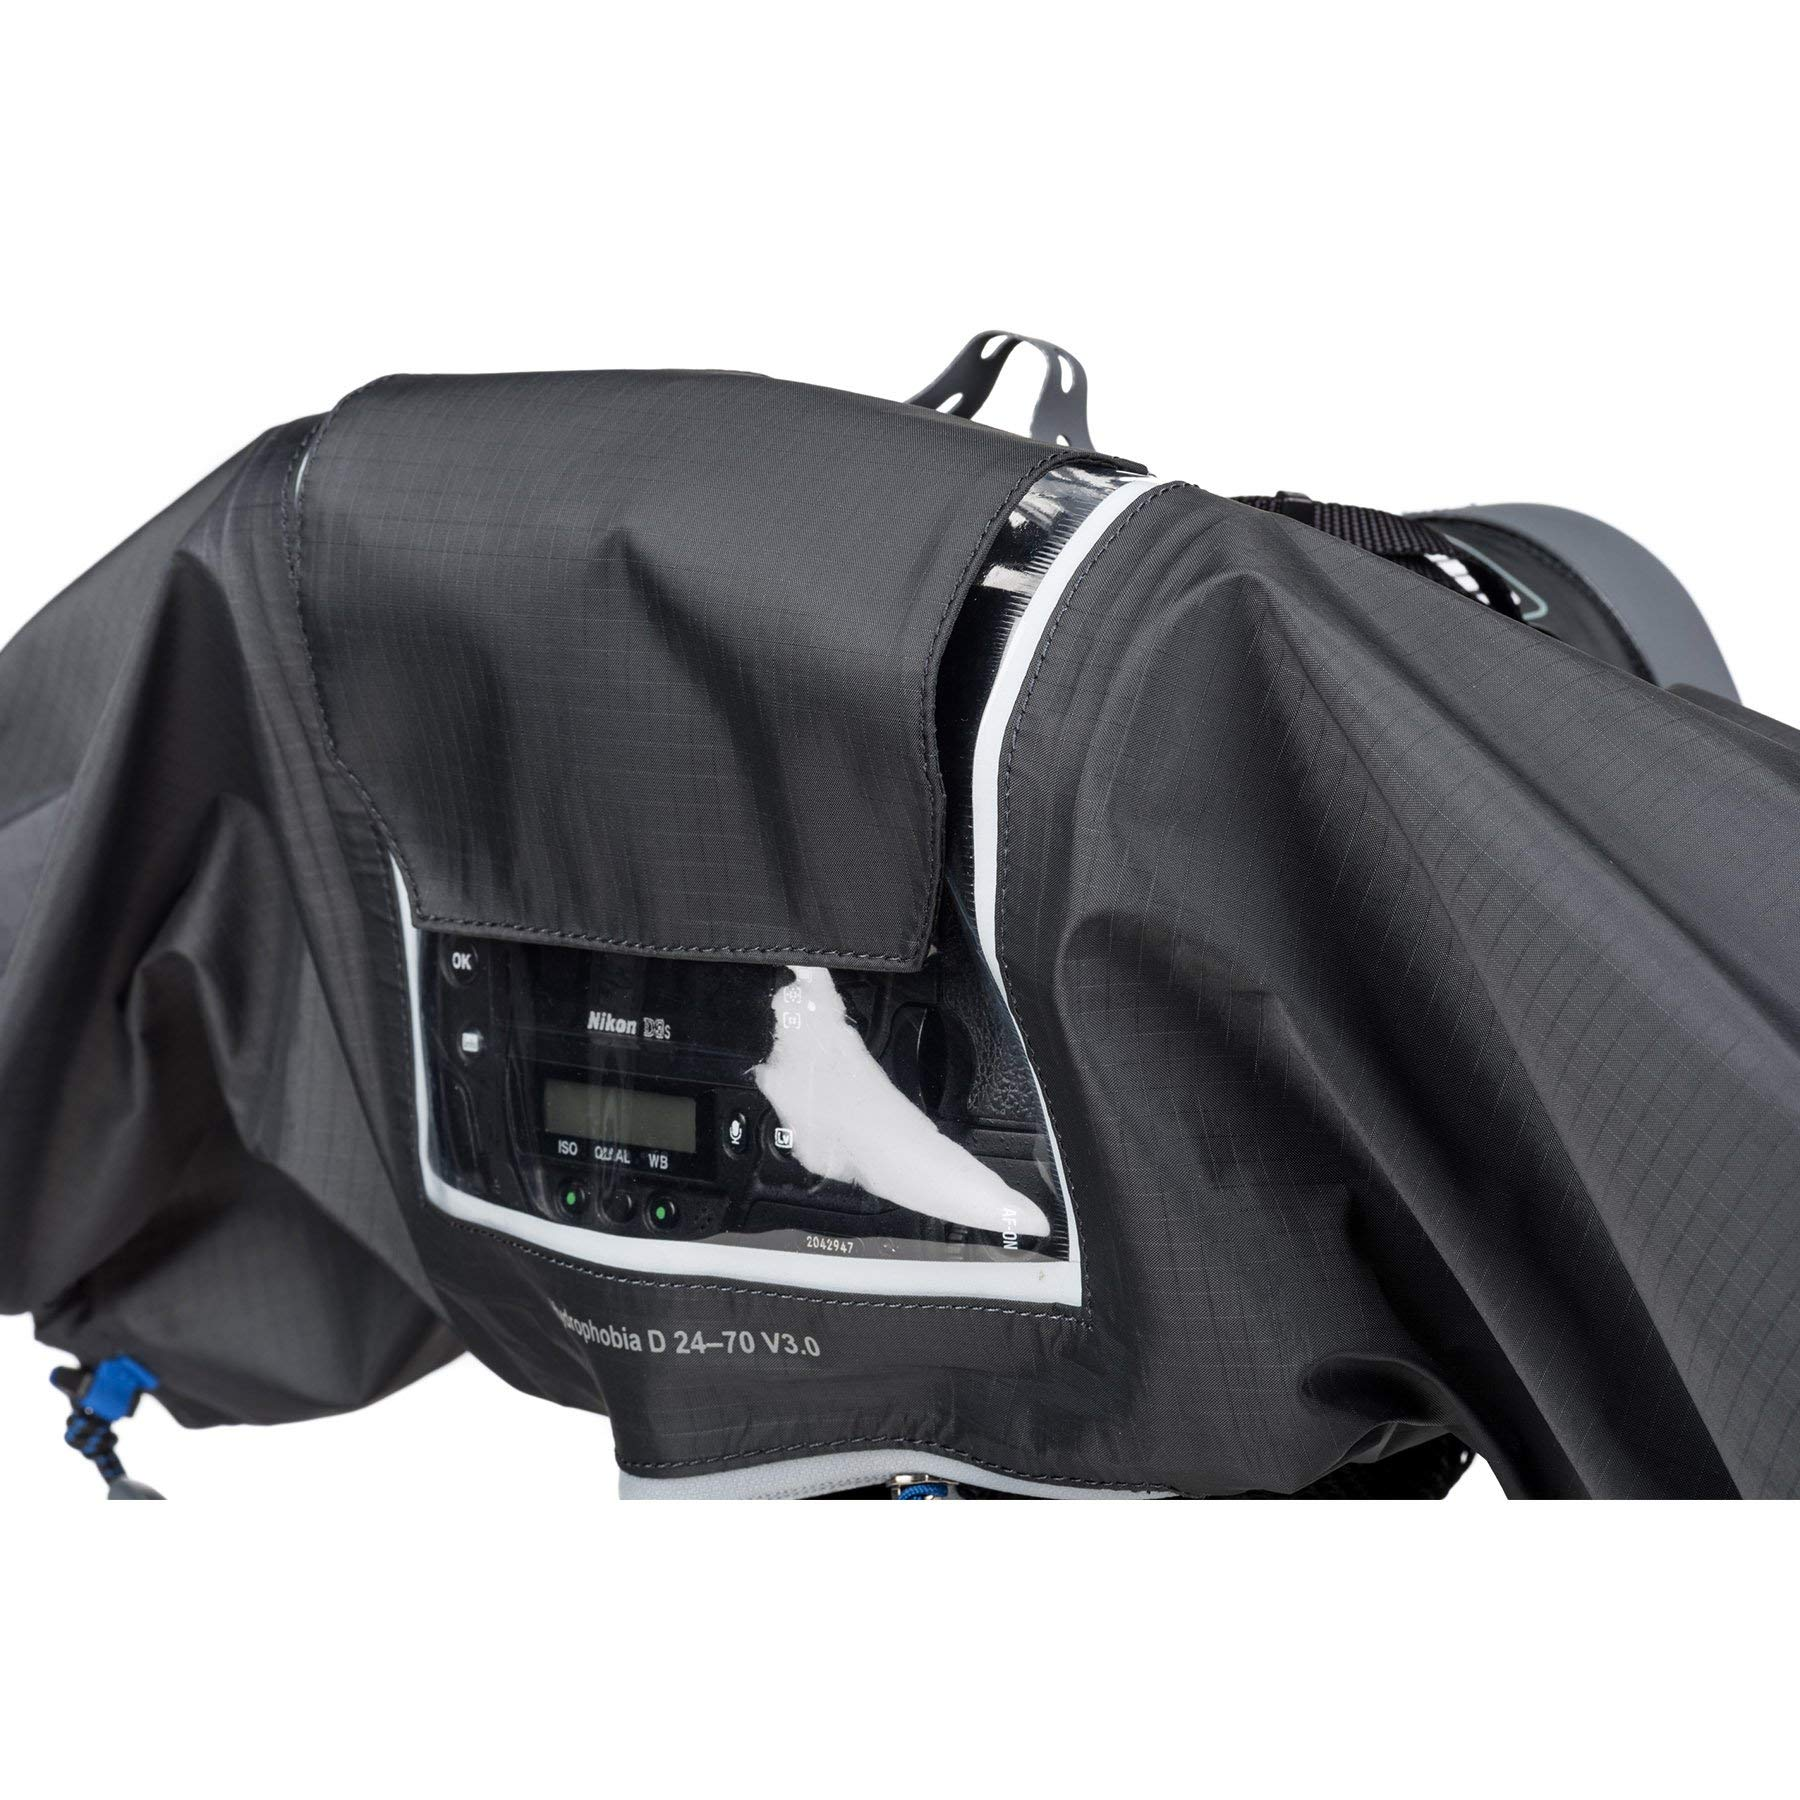 Think Tank Photo Hydrophobia D 24-70 V3 Camera Rain Cover for DSLR Camera with 24-70mm f/2.8 Lens by Think Tank (Image #4)